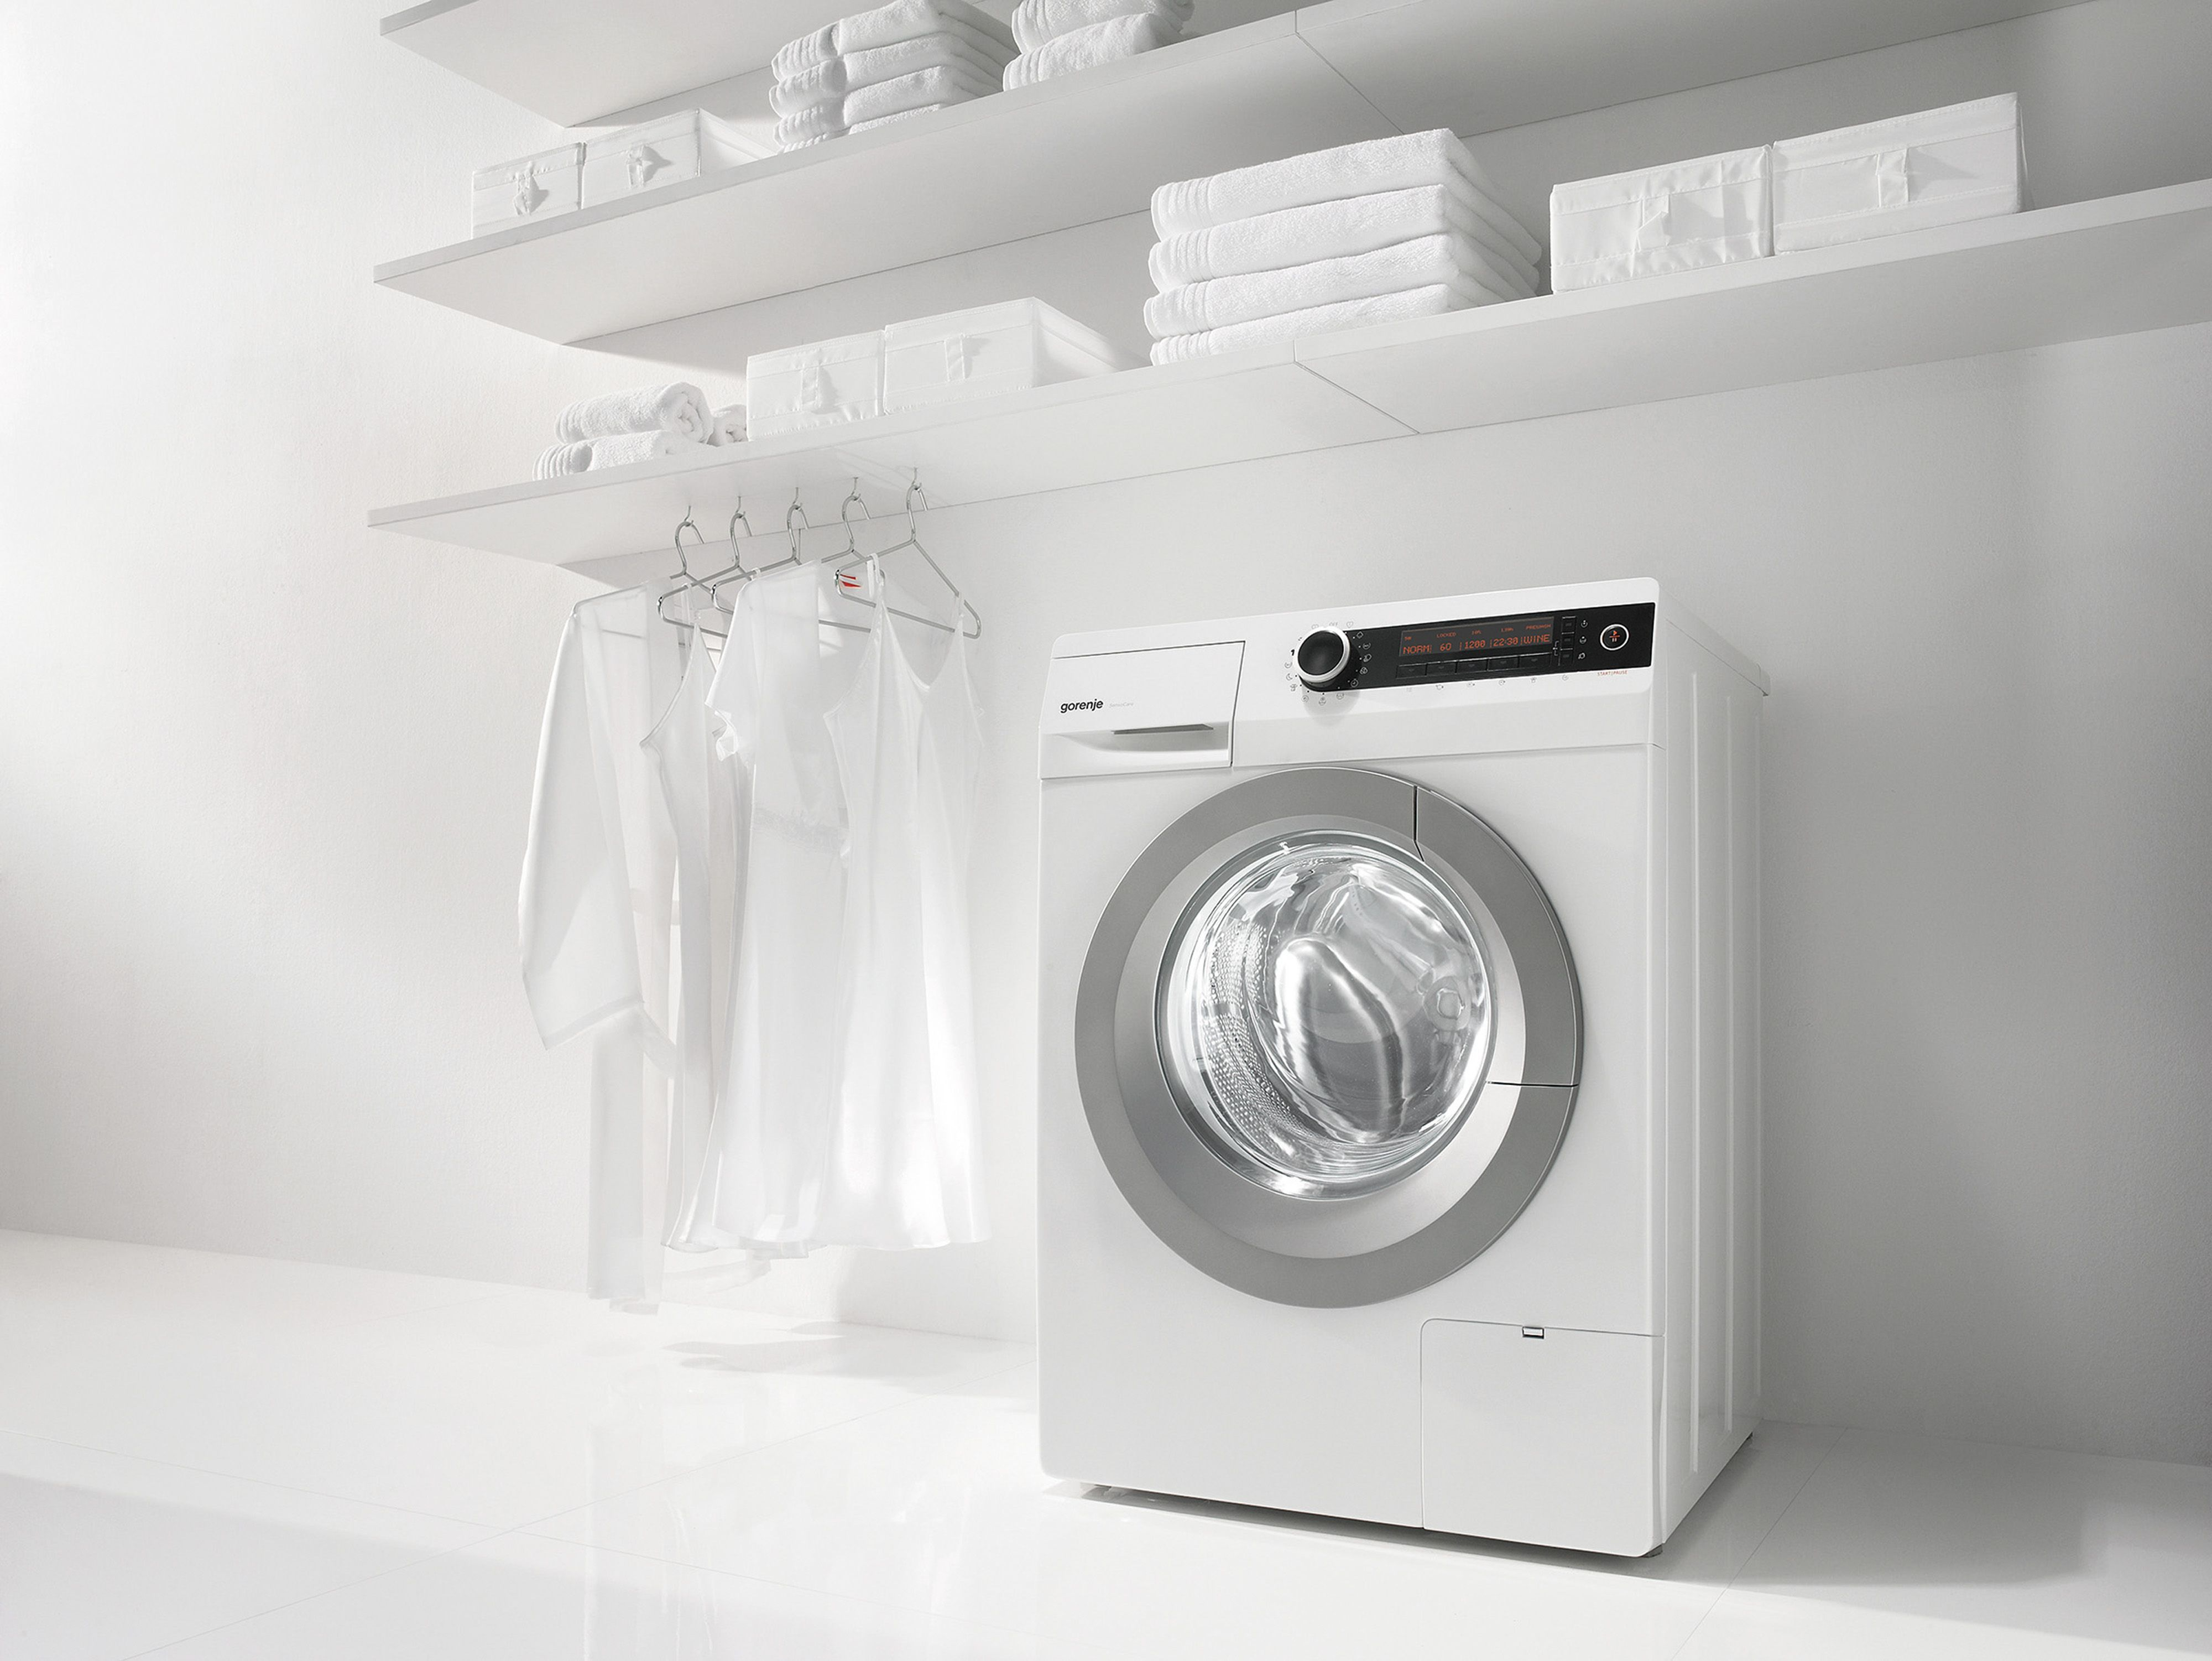 Washing Machine Design Google Inspiraiton Together With Samsung Electric Clothes Dryer Additionally Maytag And The Machines Washer